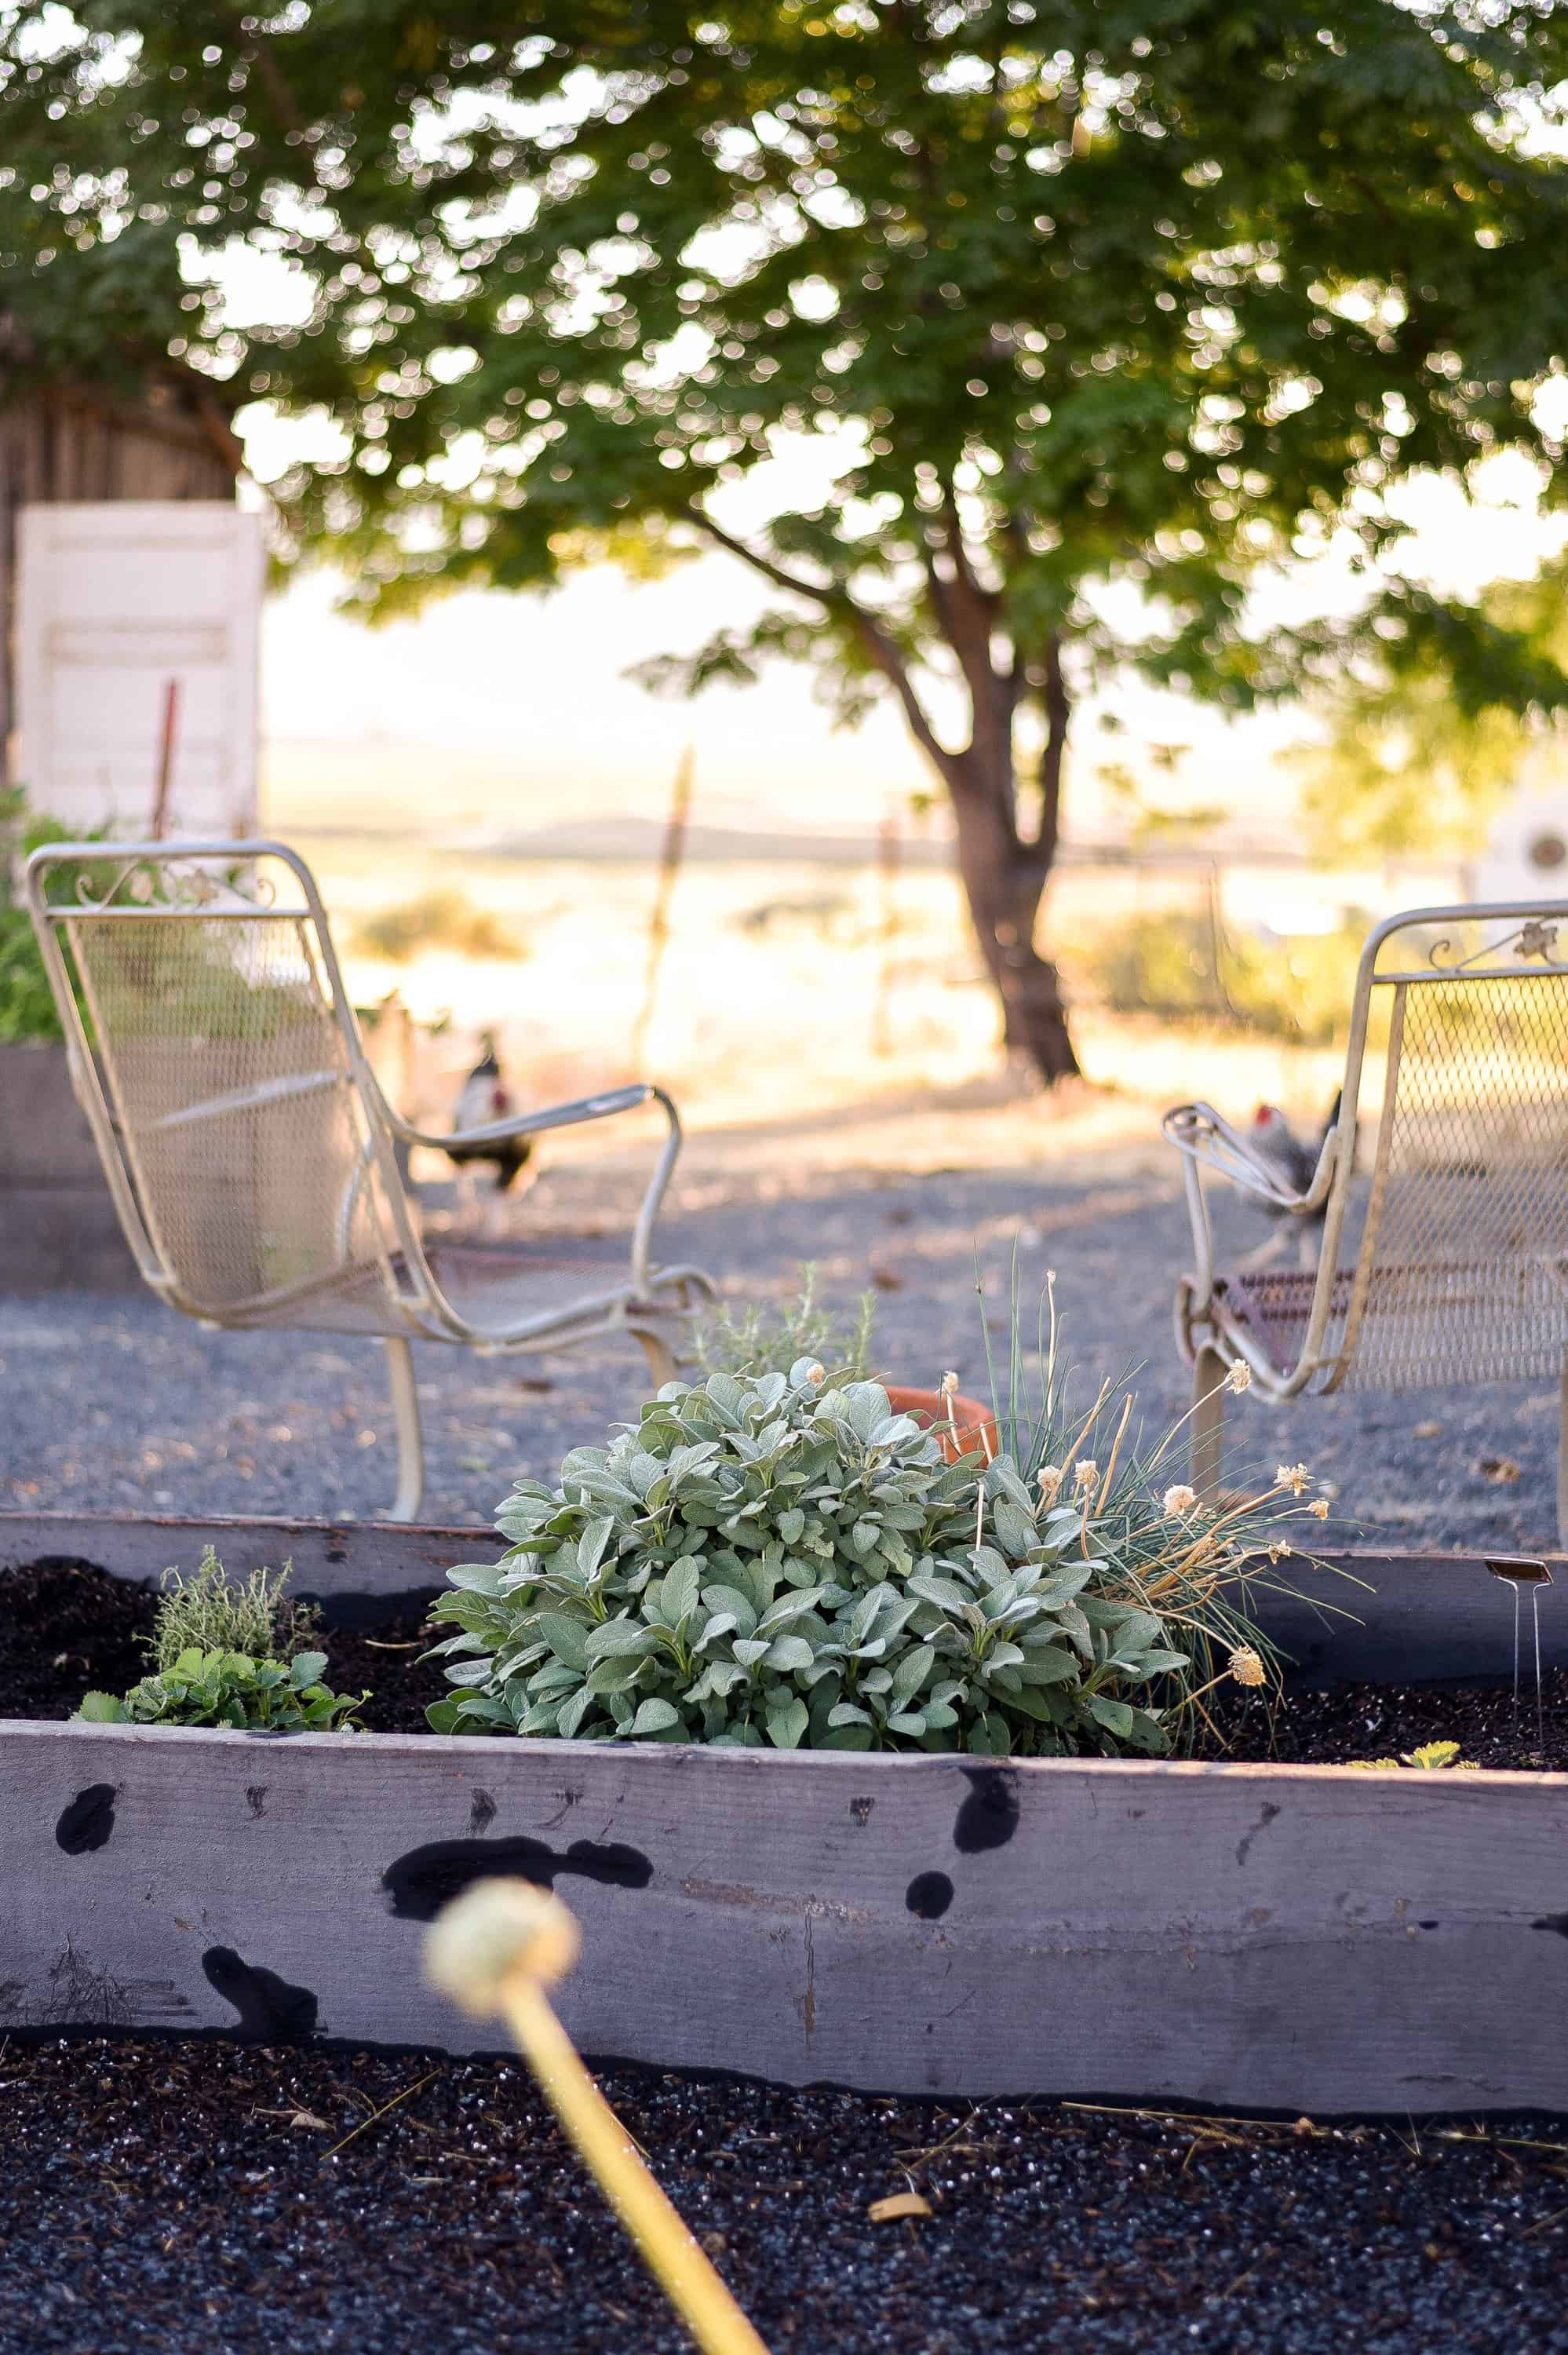 If you've ever wondered how to grow fall or winter vegetables - it's just like summer gardening, with a splash of extra effort!